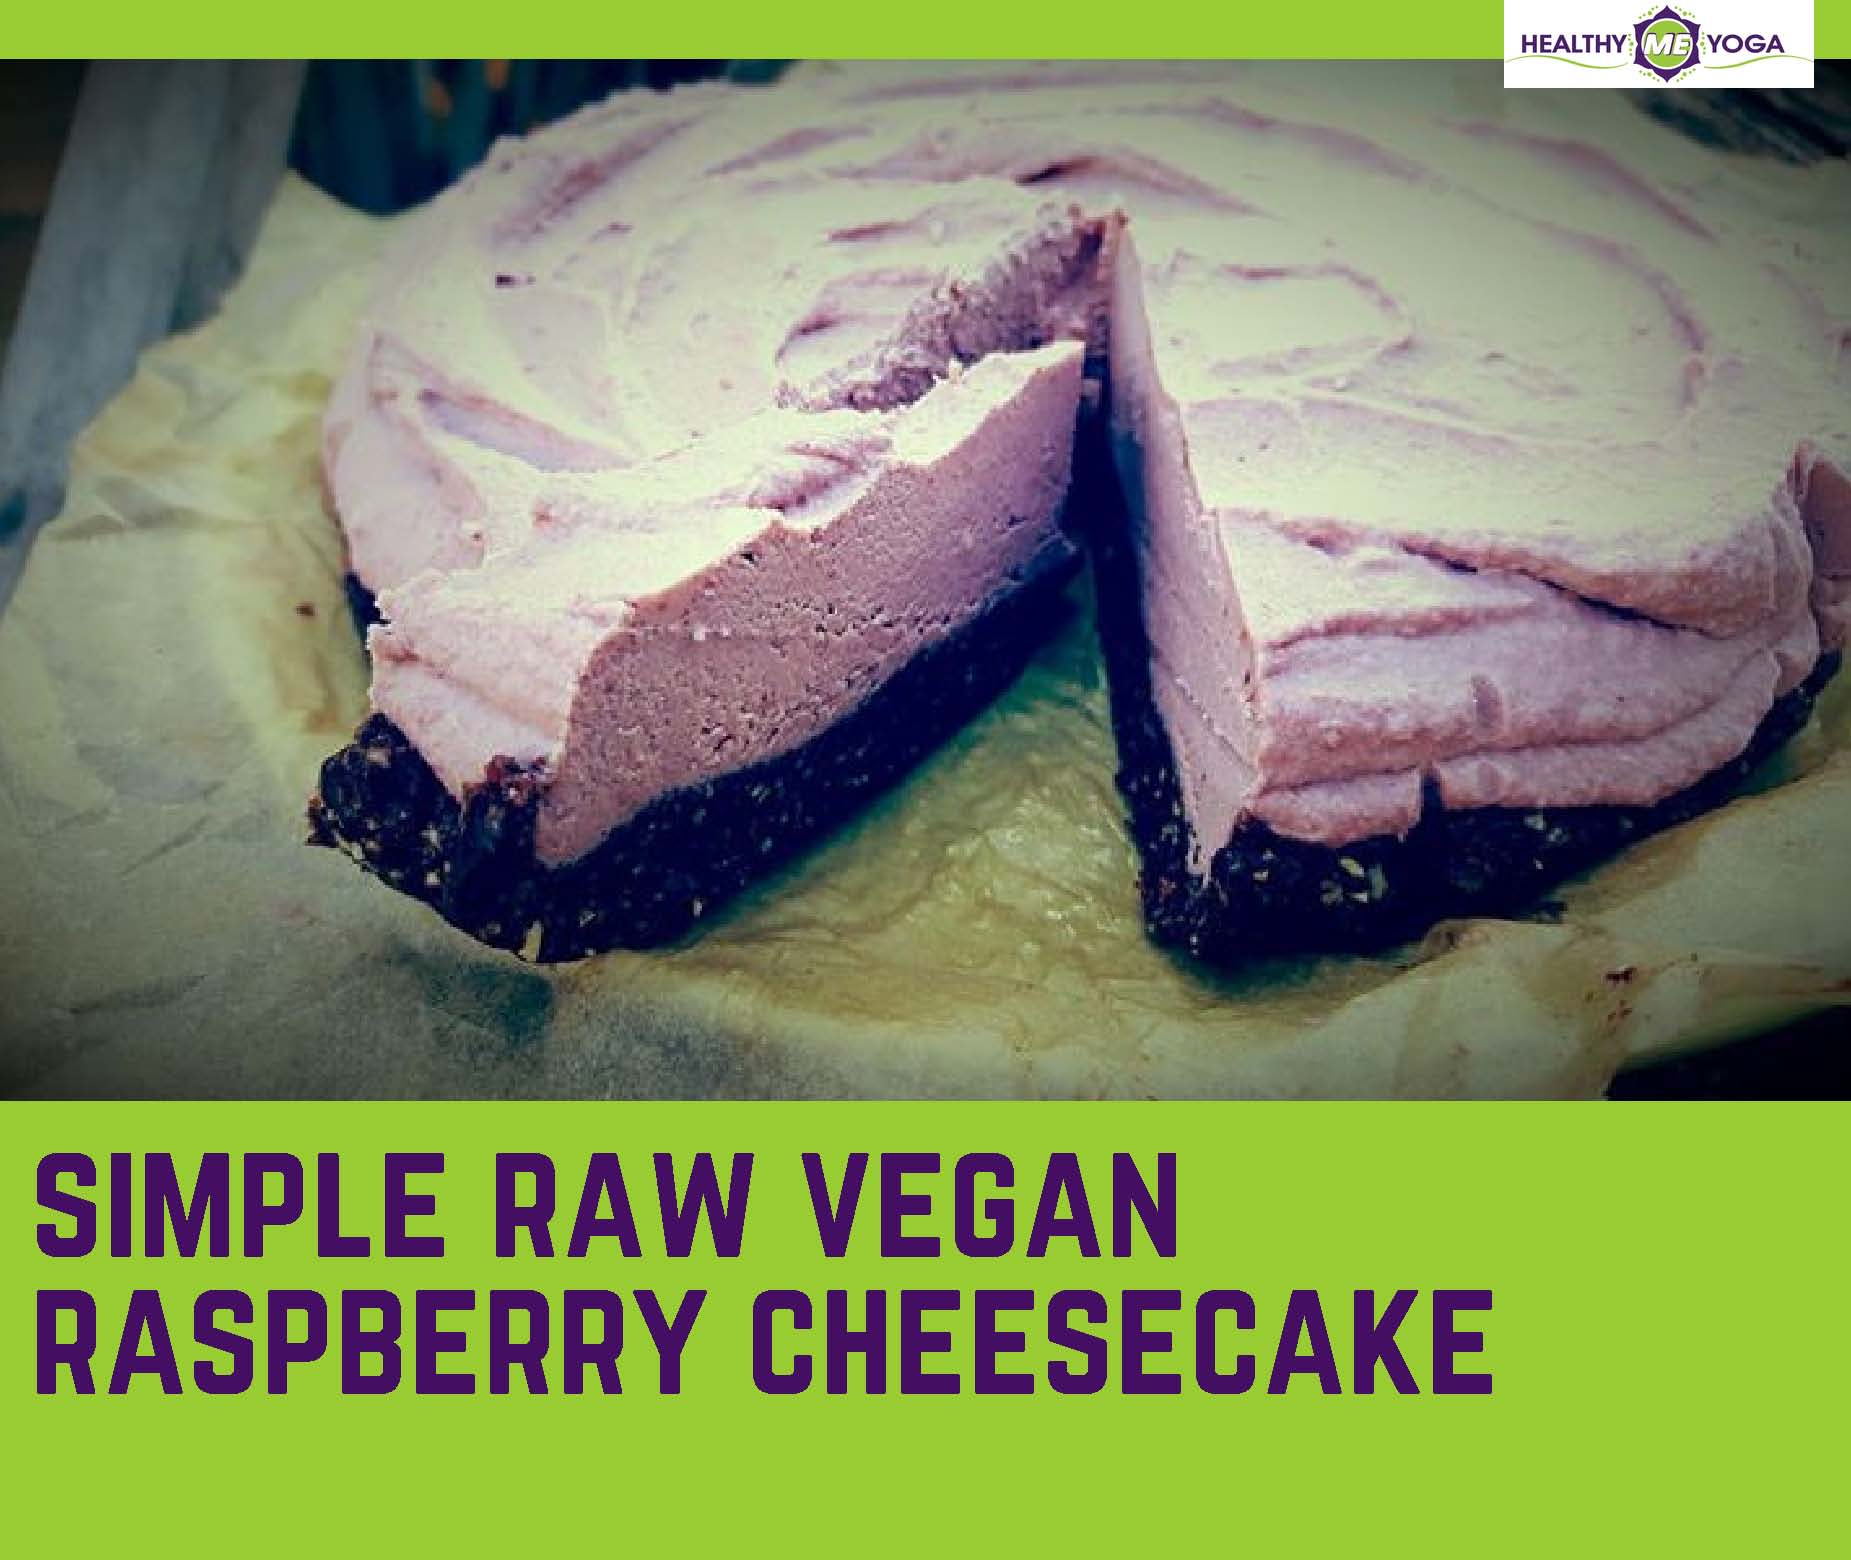 raw vegan rasberry cheesecake